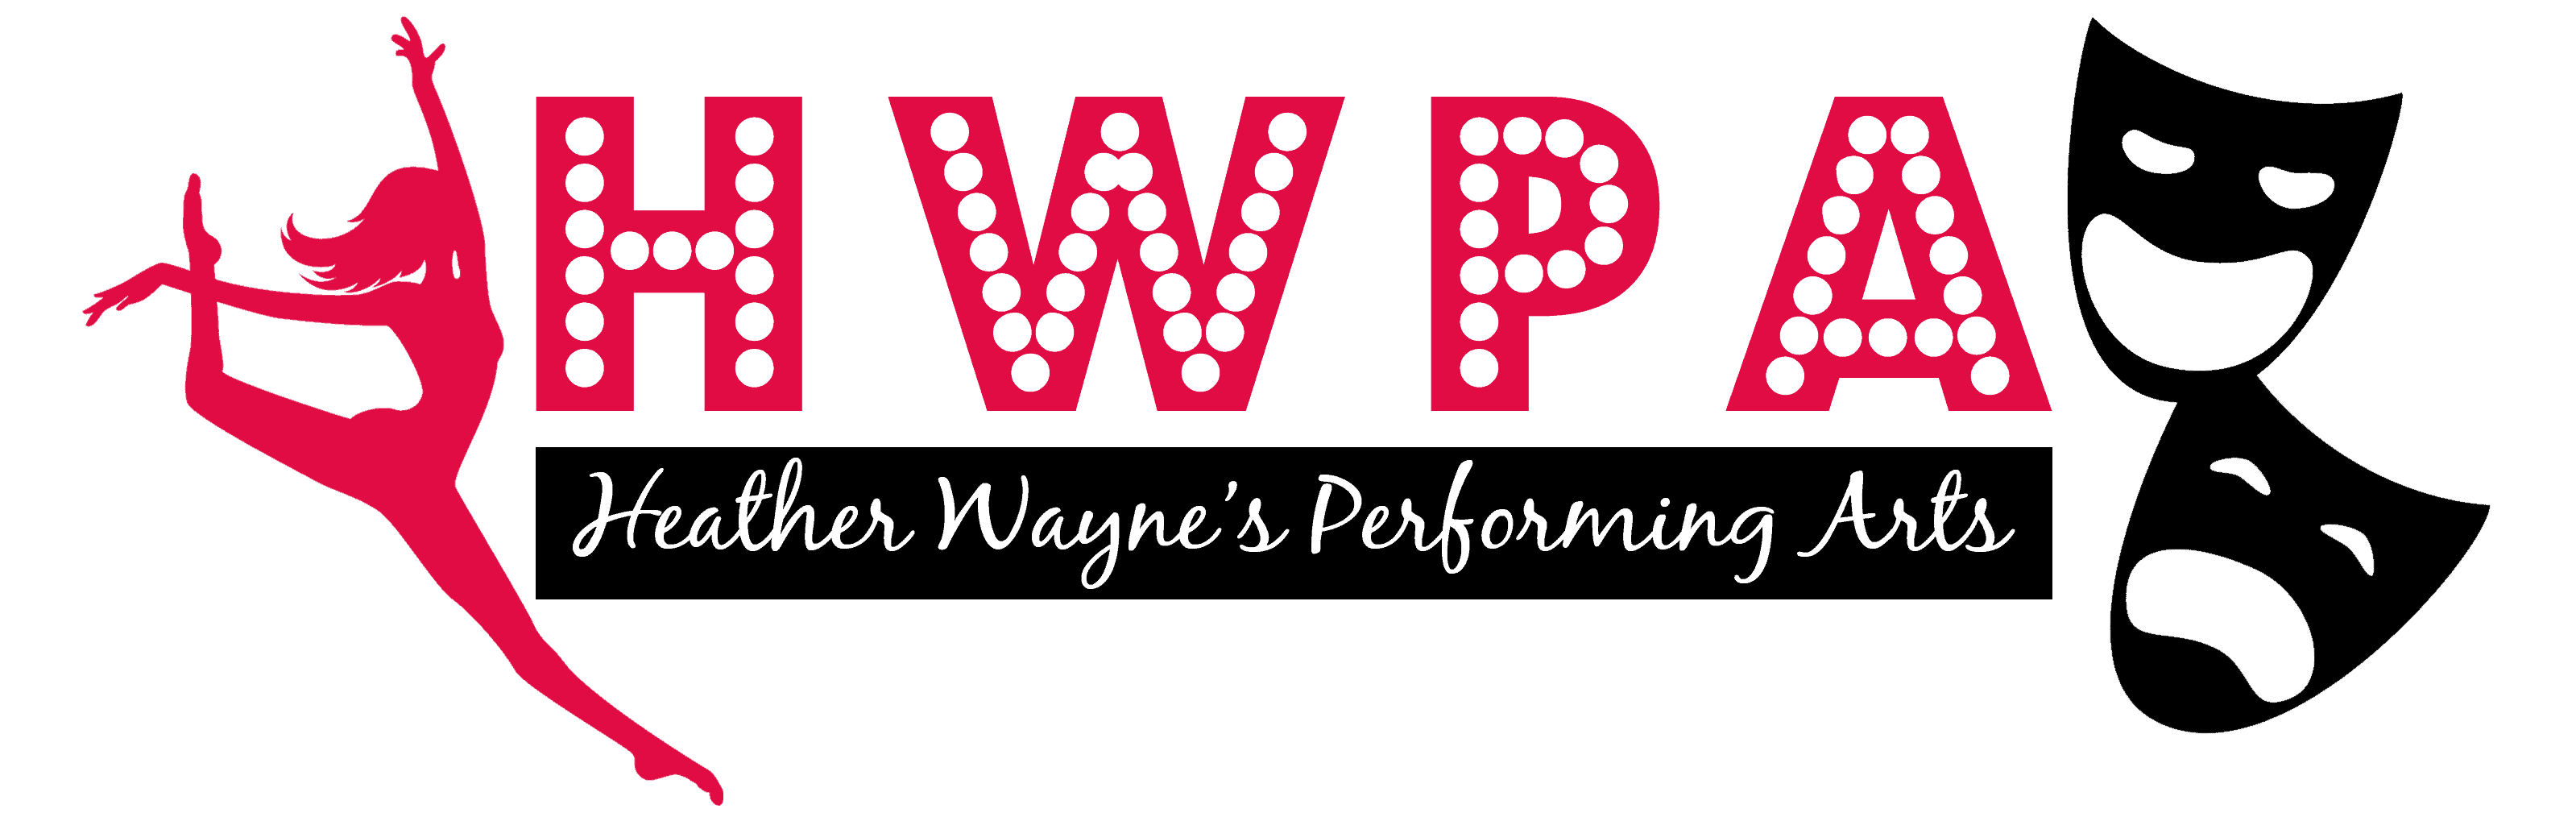 Heather Wayne Performing Arts Offers Students a Place to Pursue Passions for Dance and Acting in Braselton and Gainesville, GA